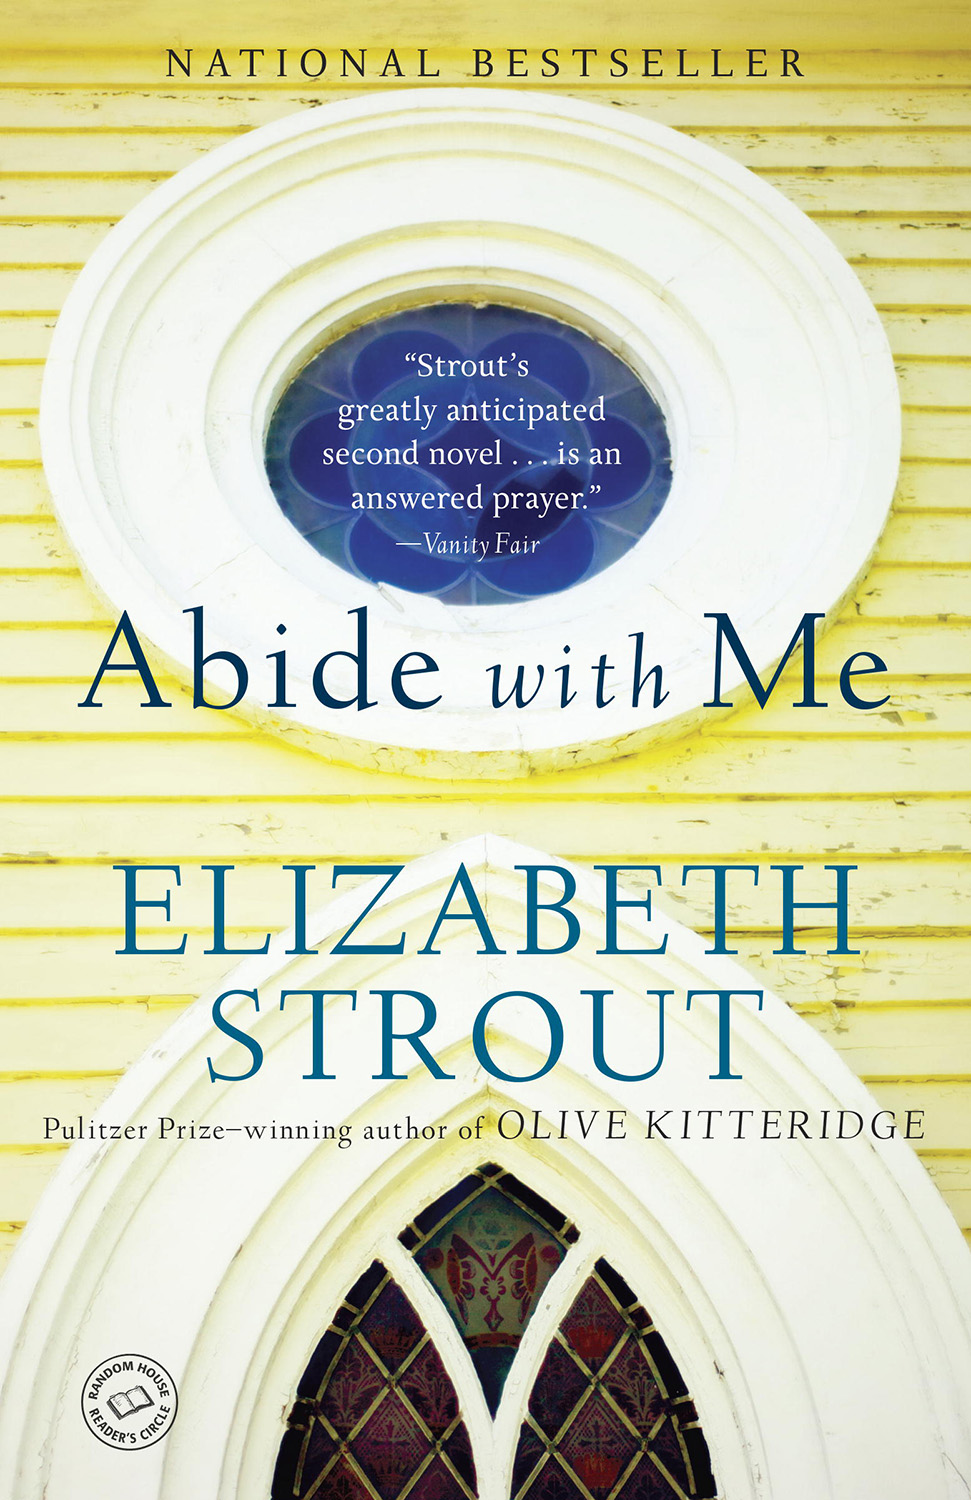 abide with me elizabeth strout summary